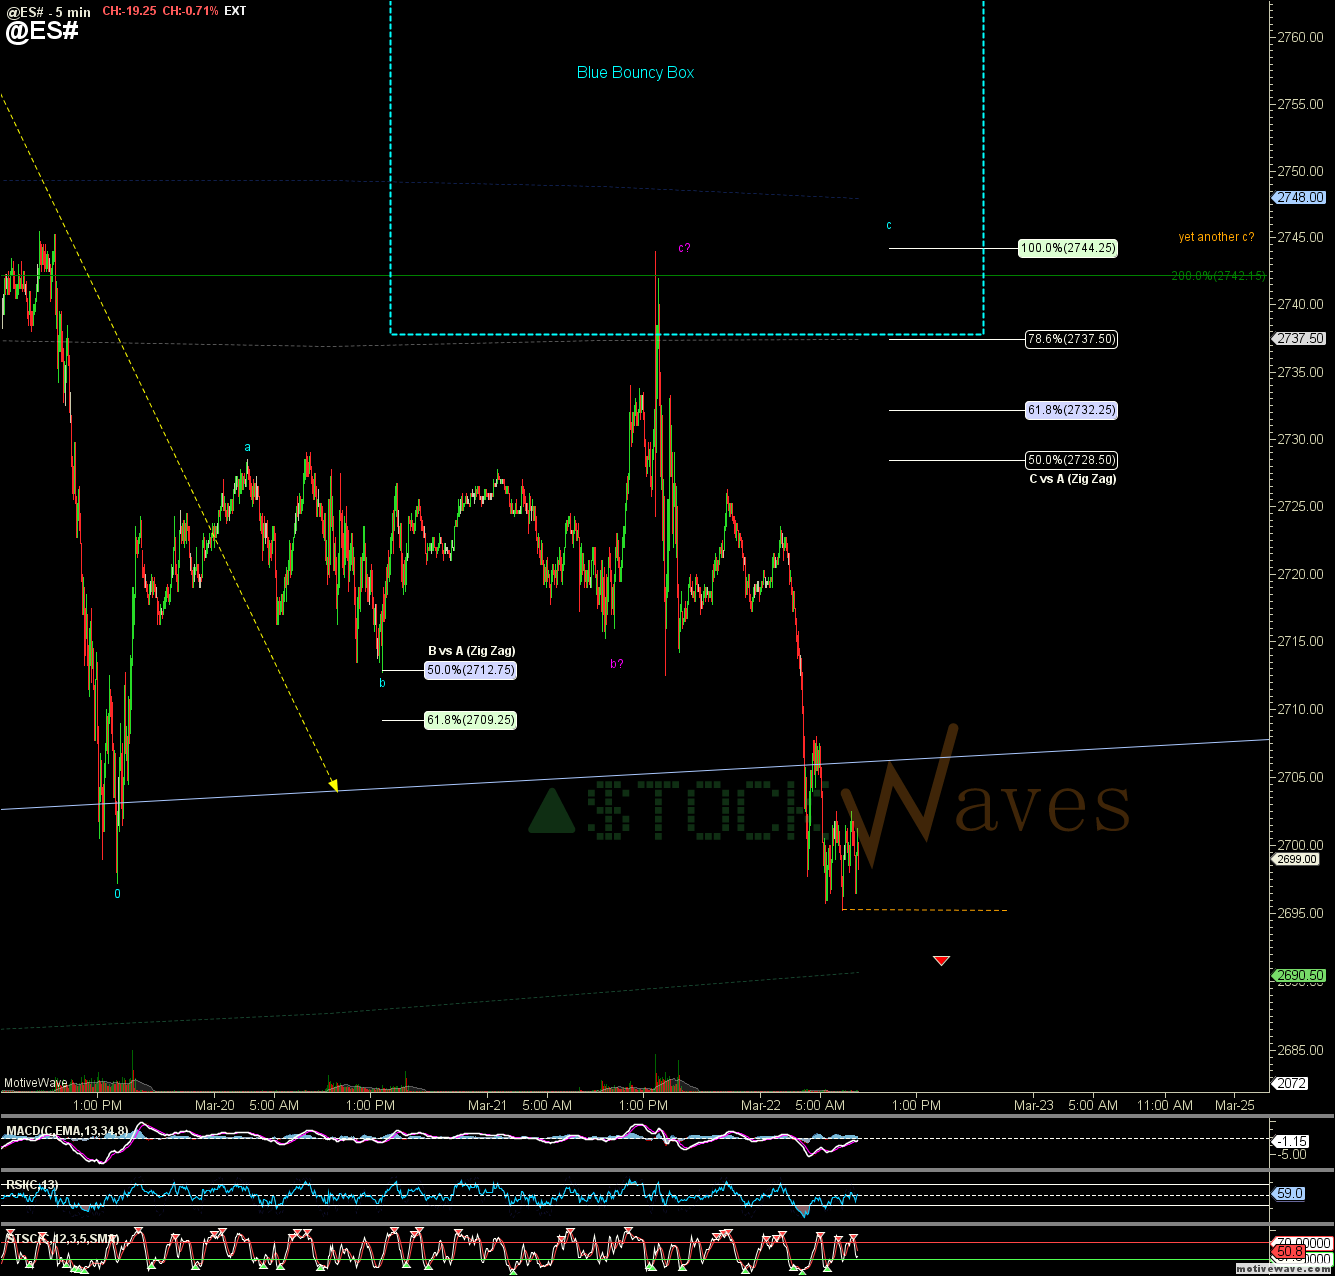 @ES# - Primary Analysis - Mar-22 0814 AM (5 min)